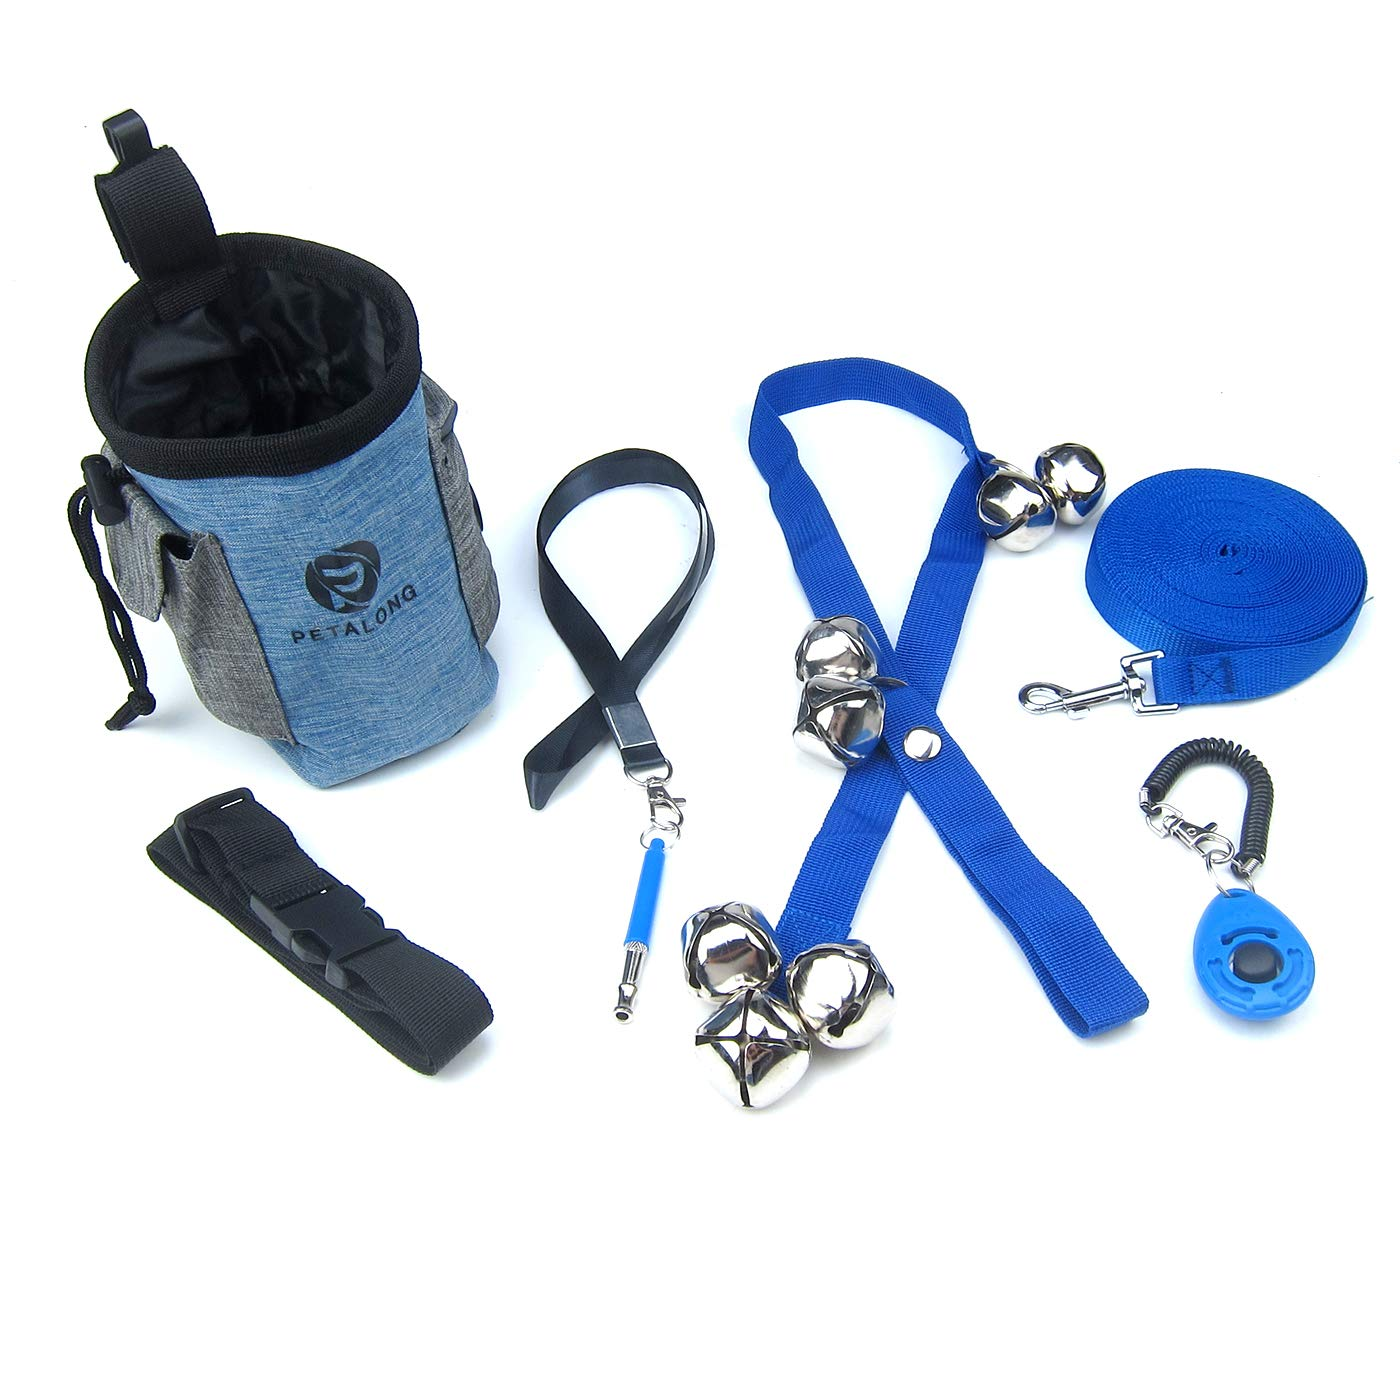 Alfie Pet - Rick 5 in 1 Puppy and Dog Training Essential Kit - Treat Pouch, Bark Control Whistle, House Training Doorbells, Clicker, and Training Leash by Alfie